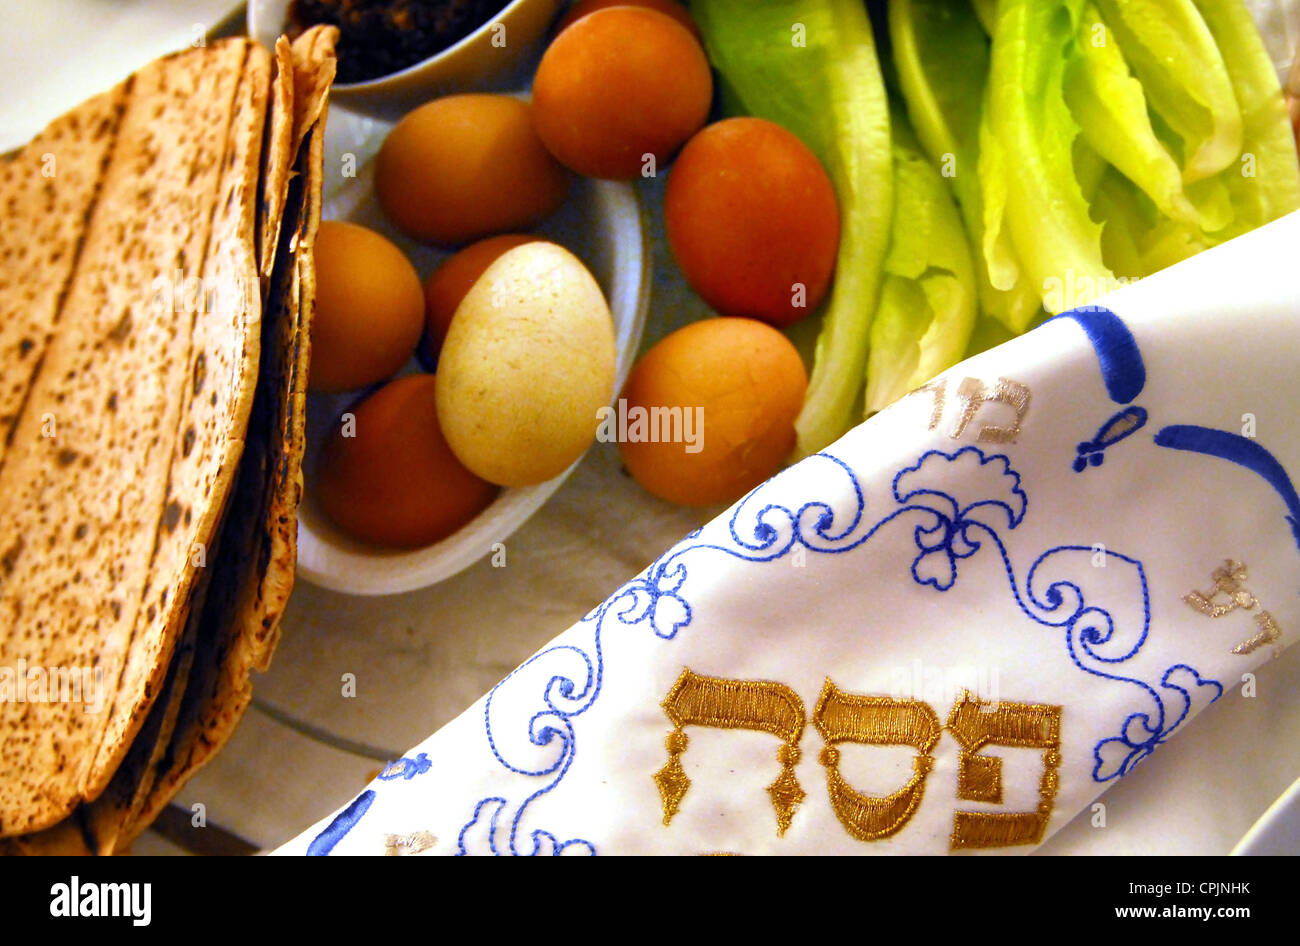 Table Ready For Traditional Seder Ritual during the Jewish holiday of Passover. - Stock Image